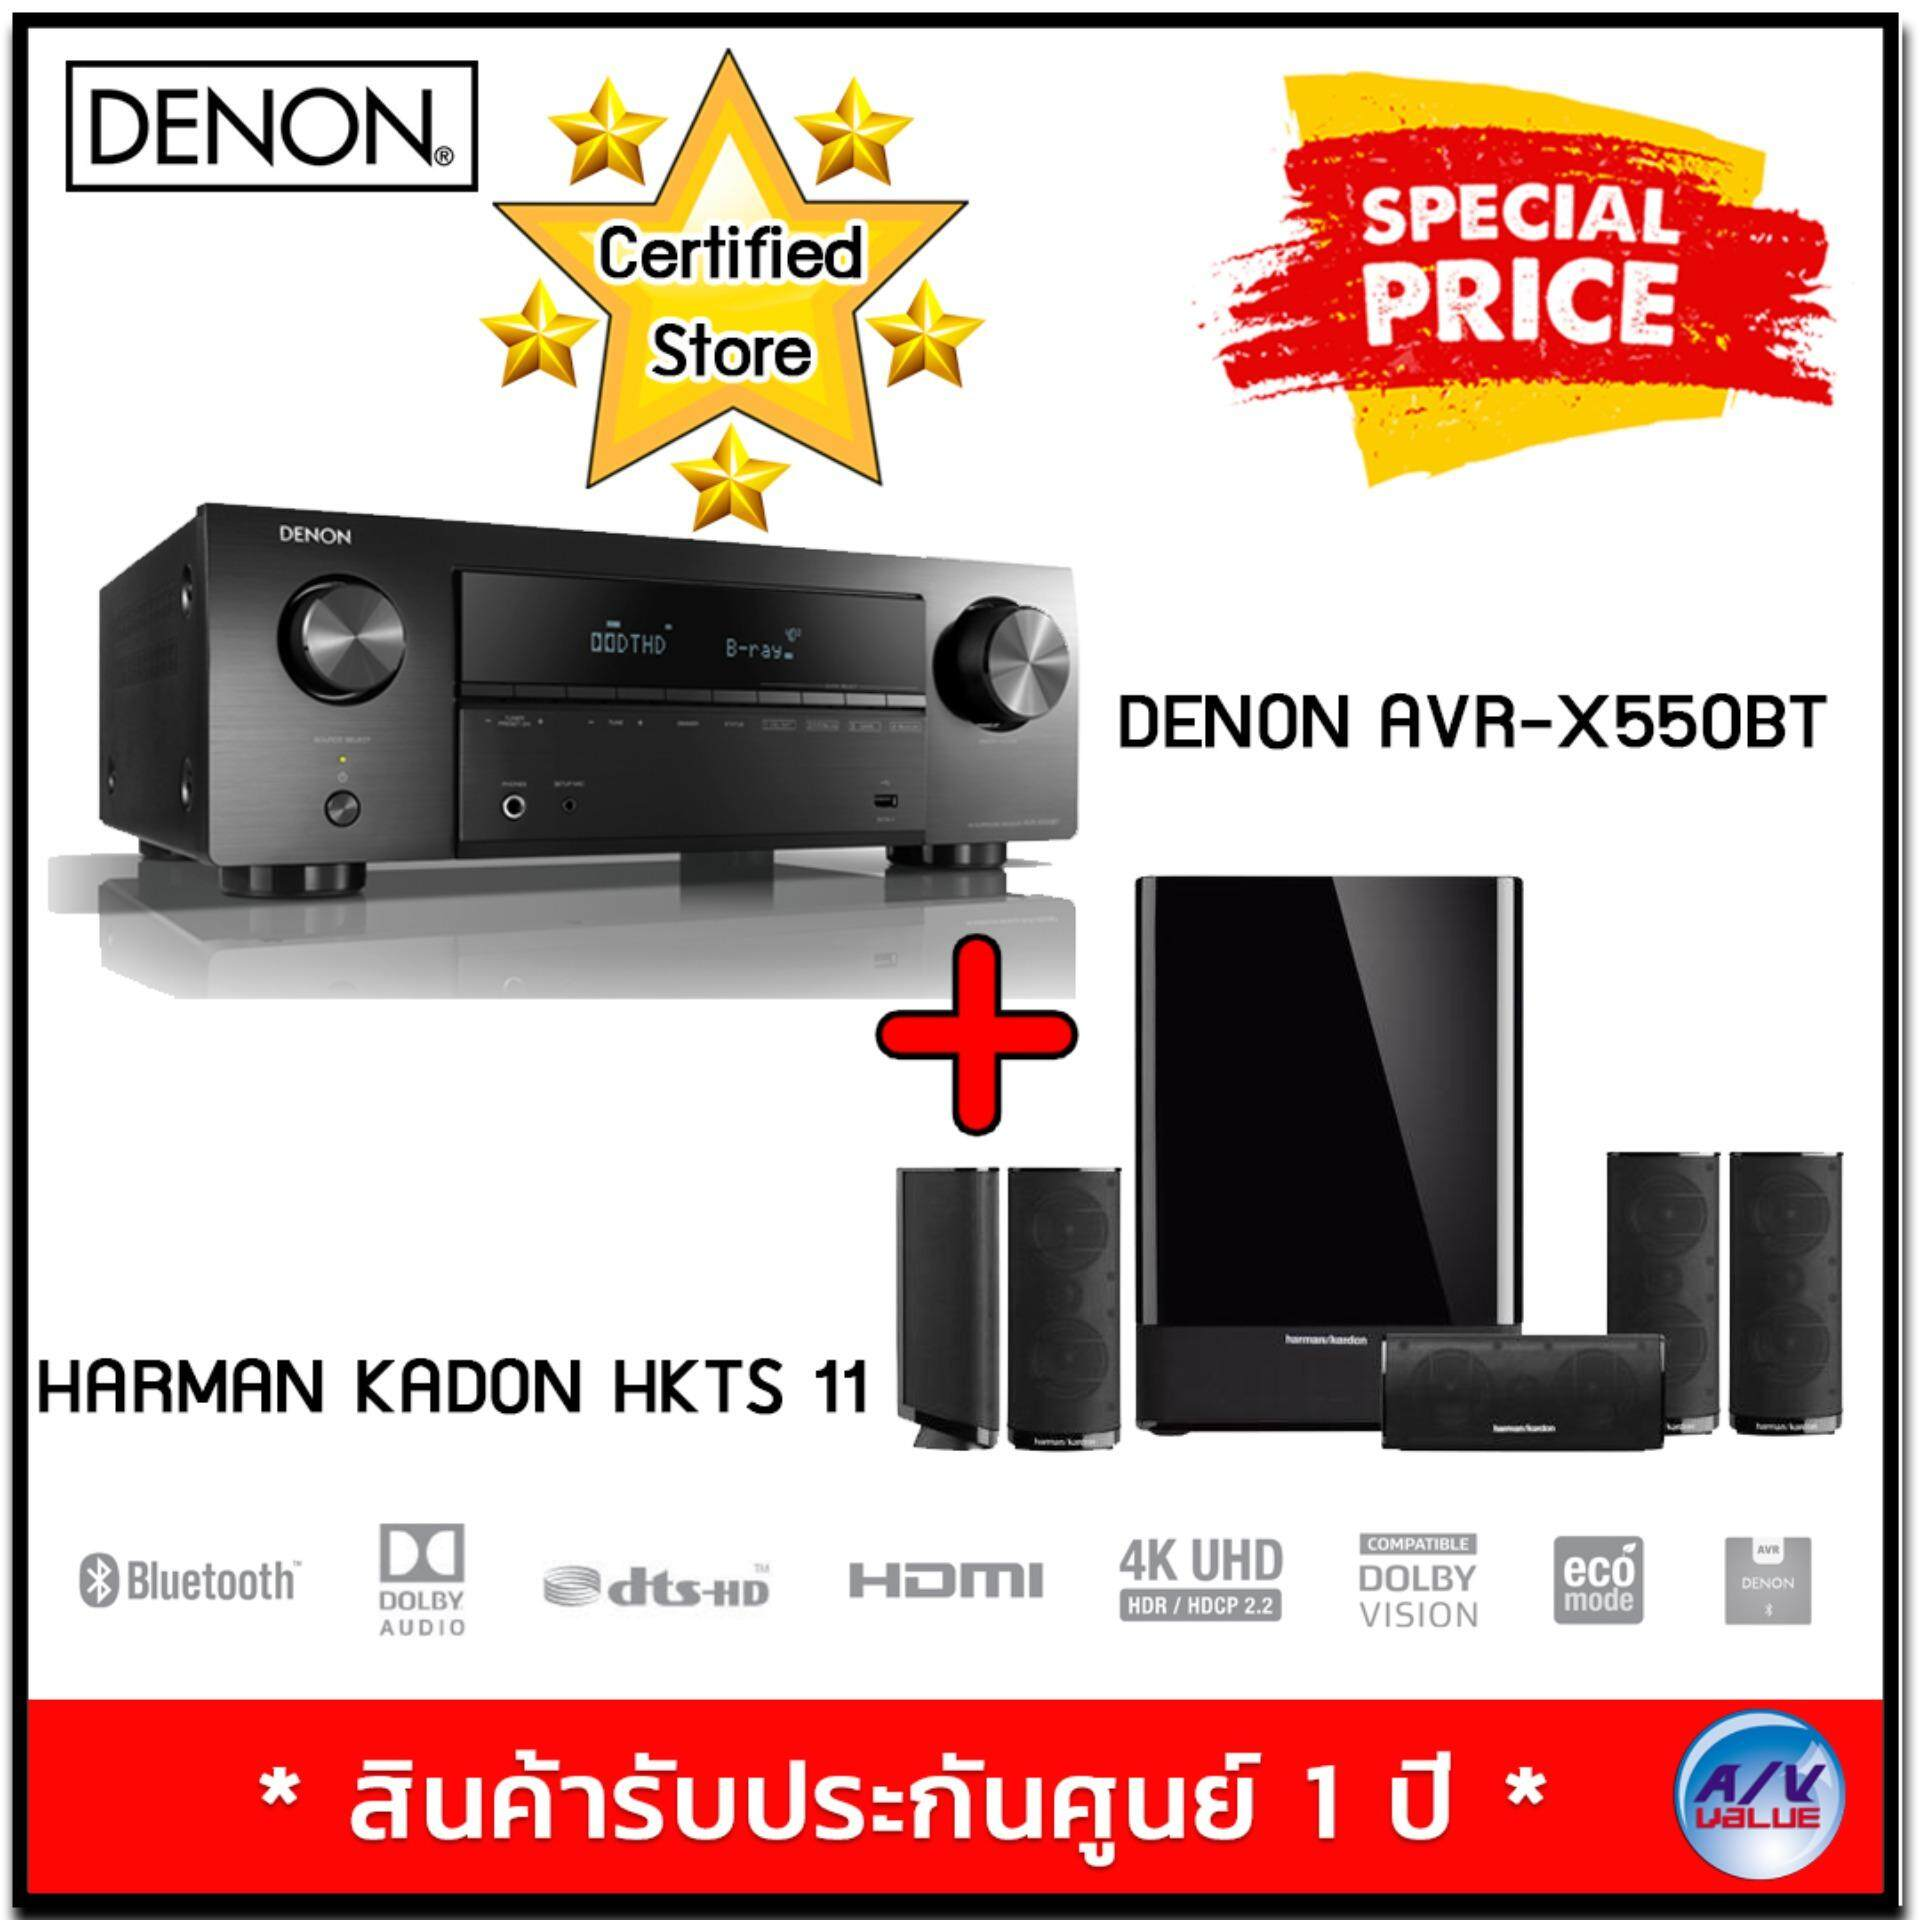 สอนใช้งาน  พระนครศรีอยุธยา DENON  AVR-X550BT 5.2 Ch. AV Receiver with Bluetooth + Harman Kardon HKTS 11 5.1 Home Theater Speaker System